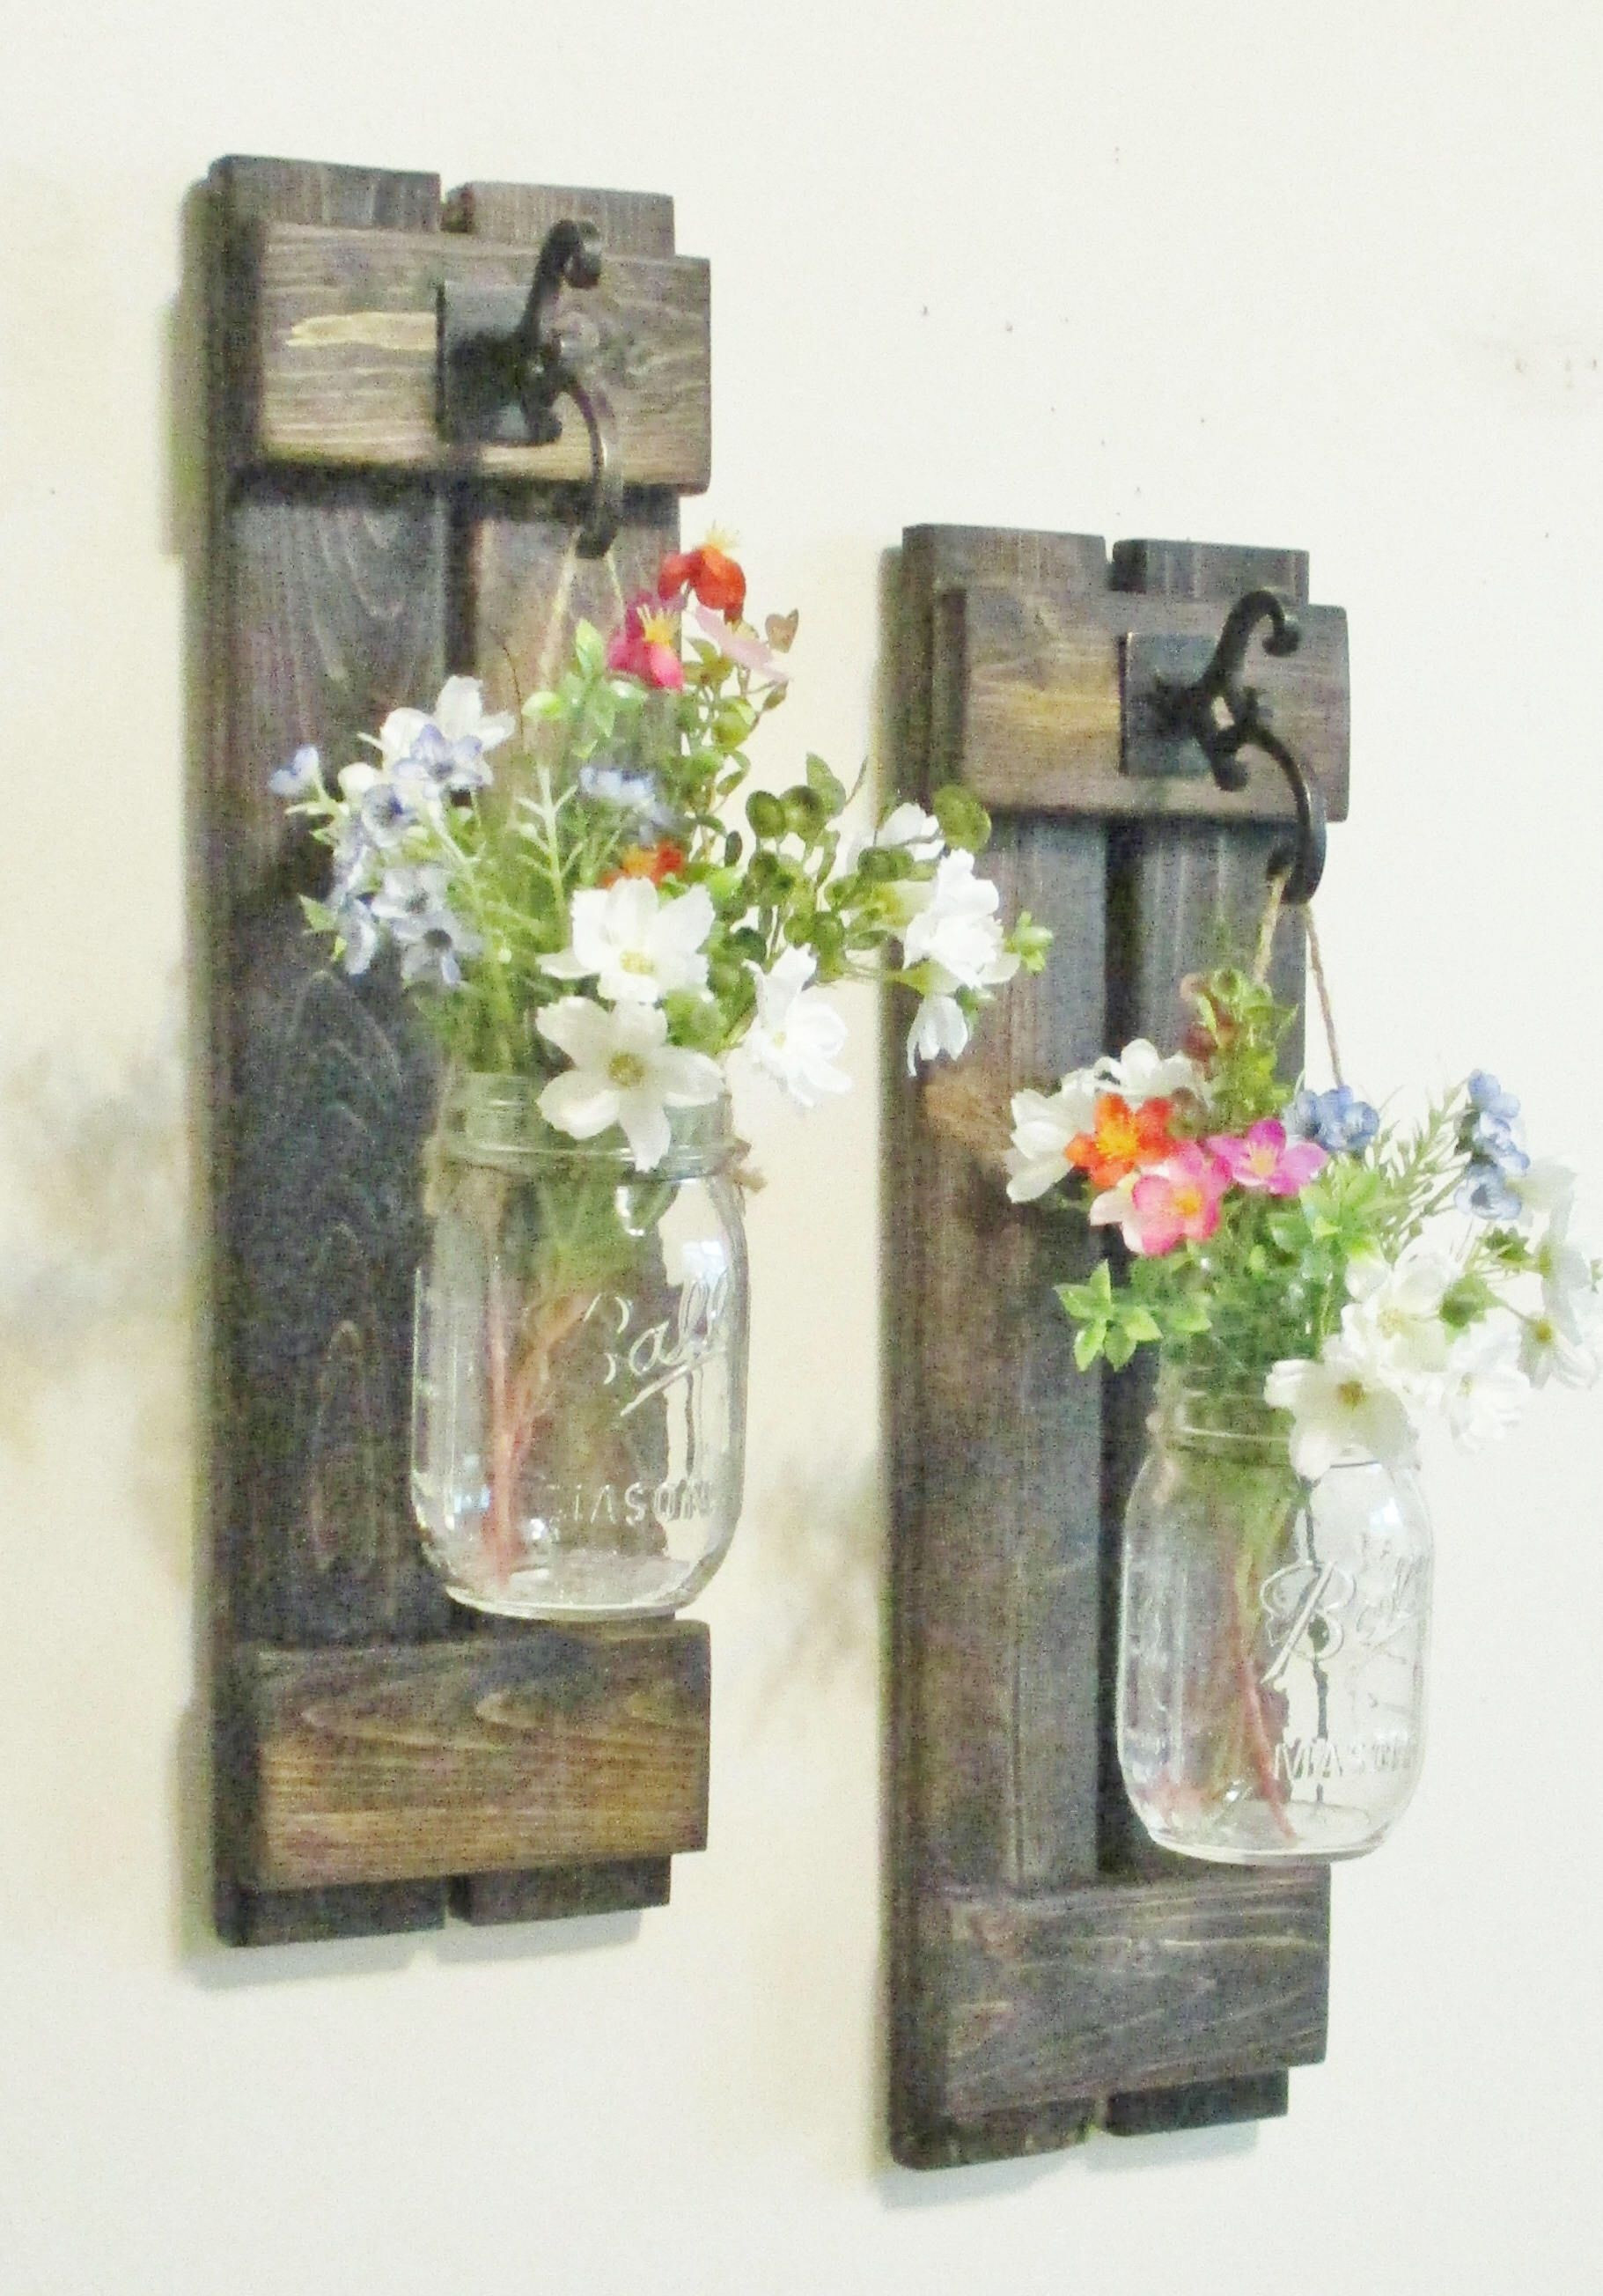 flower vase sconces of new design rustic primitive farmhouse wood wall decor 2 hanging regarding new design rustic primitive farmhouse wood wall decor 2 hanging mason jar sconces wall sconce by cottagehomedecor on etsy htt